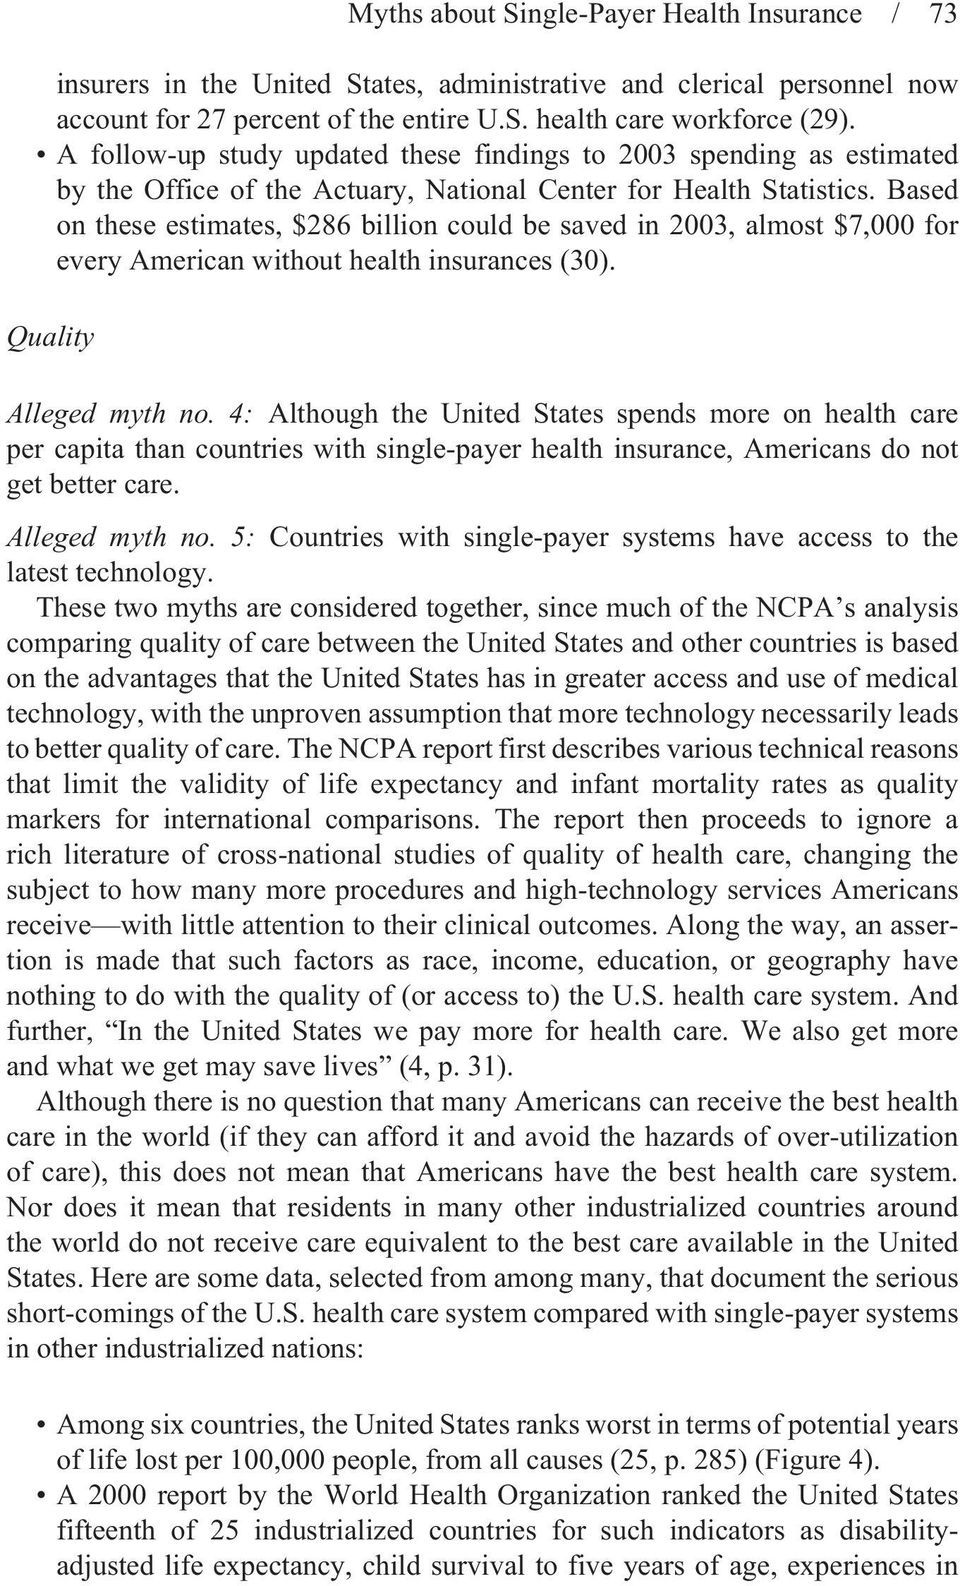 Based on these estimates, $286 billion could be saved in 2003, almost $7,000 for every American without health insurances (30). Quality Myths about Single-Payer Health Insurance / 73 Alleged myth no.